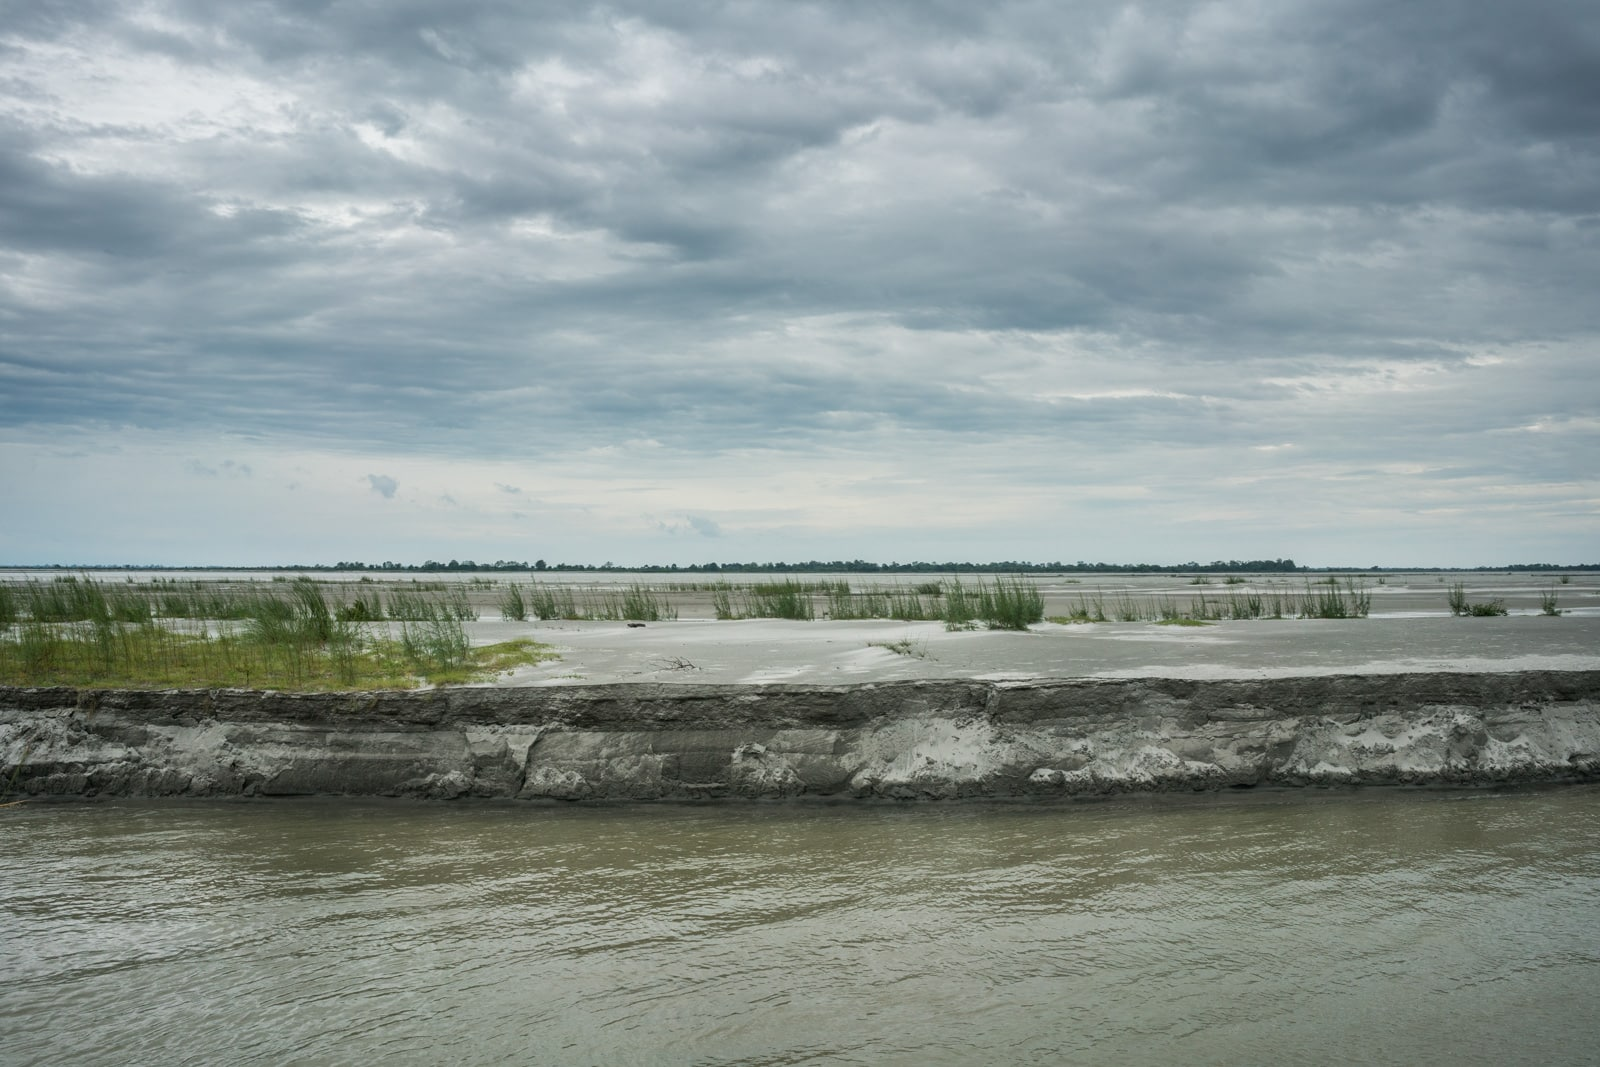 Eroding banks of Majuli river island